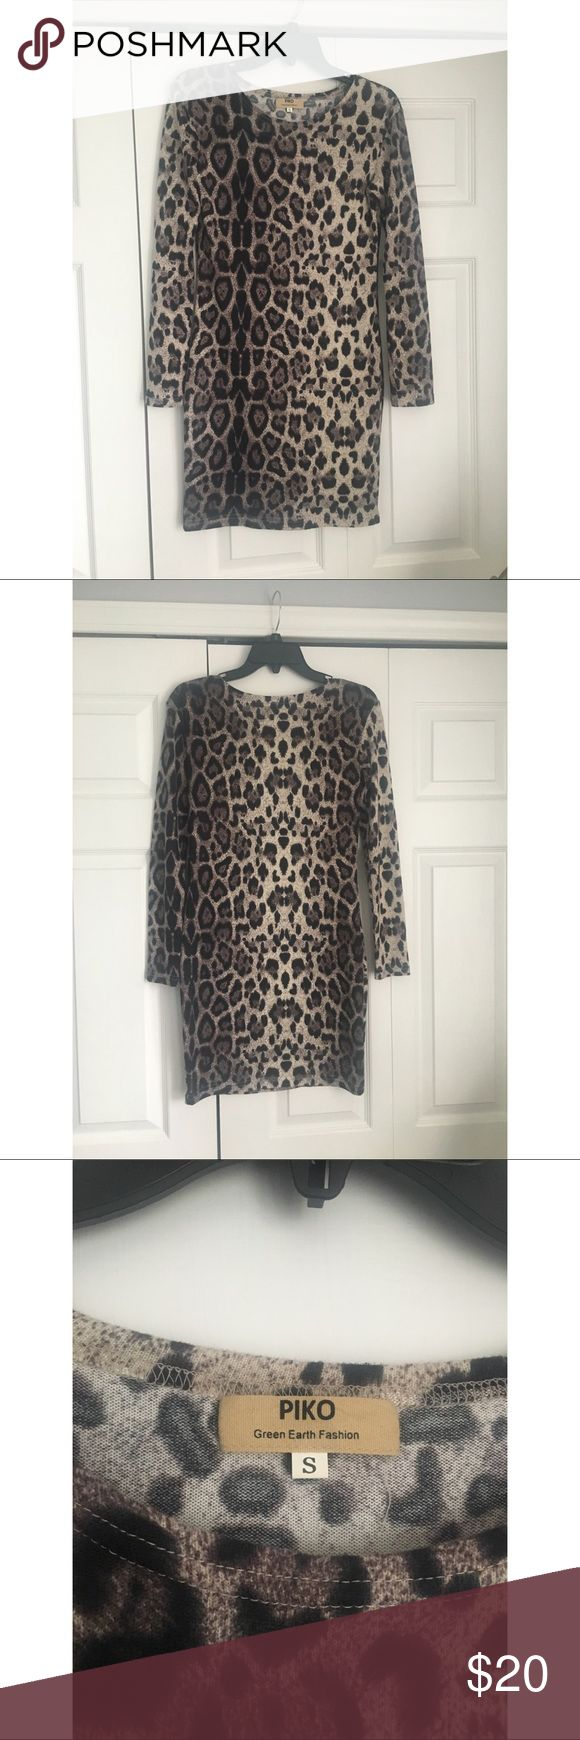 Leopard Long Sleeve Dress This is a long sleeve dress in a size small from Red Dress Boutique. Only worn once Piko Dresses Mini